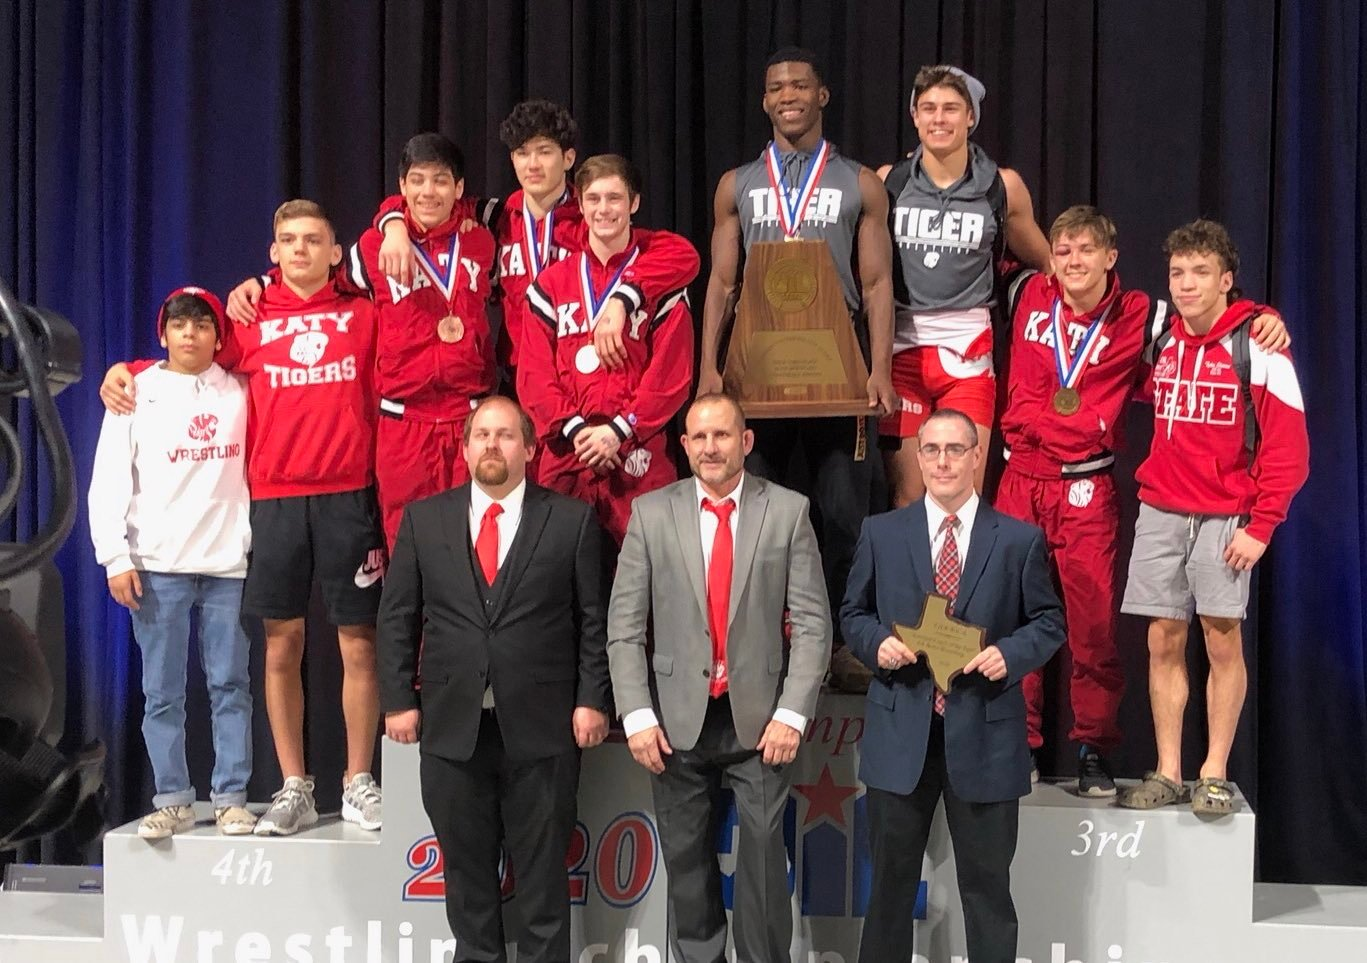 Katy High's boys finished third overall at the UIL Class 6A state tournament on Feb. 22, scoring 94 points.